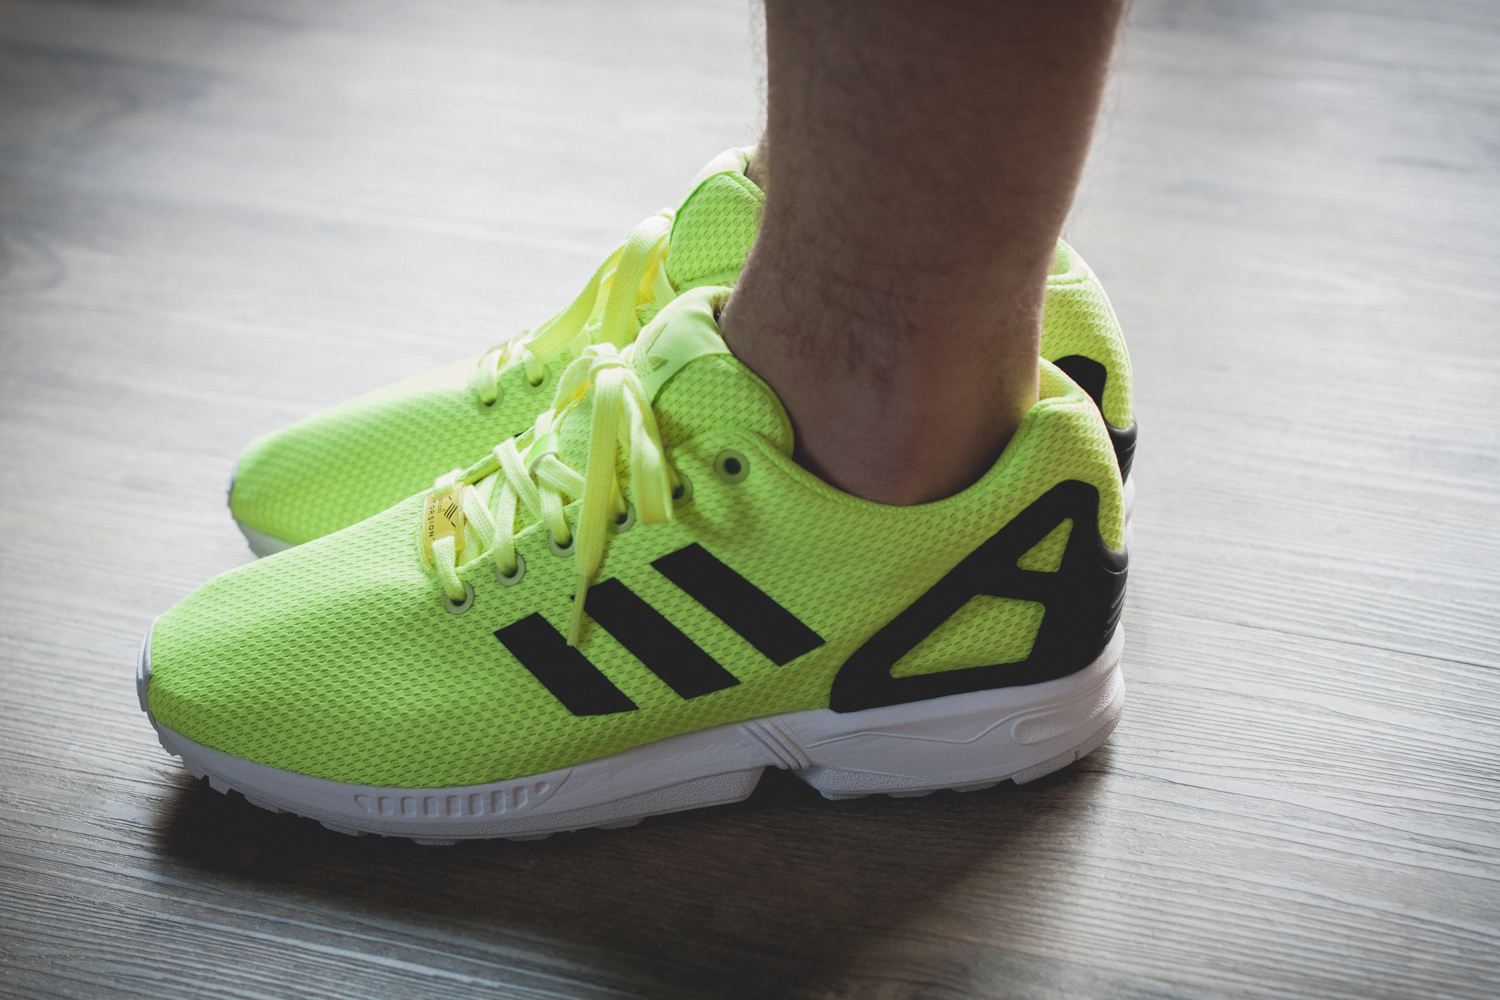 adidas zx flux electric review 1